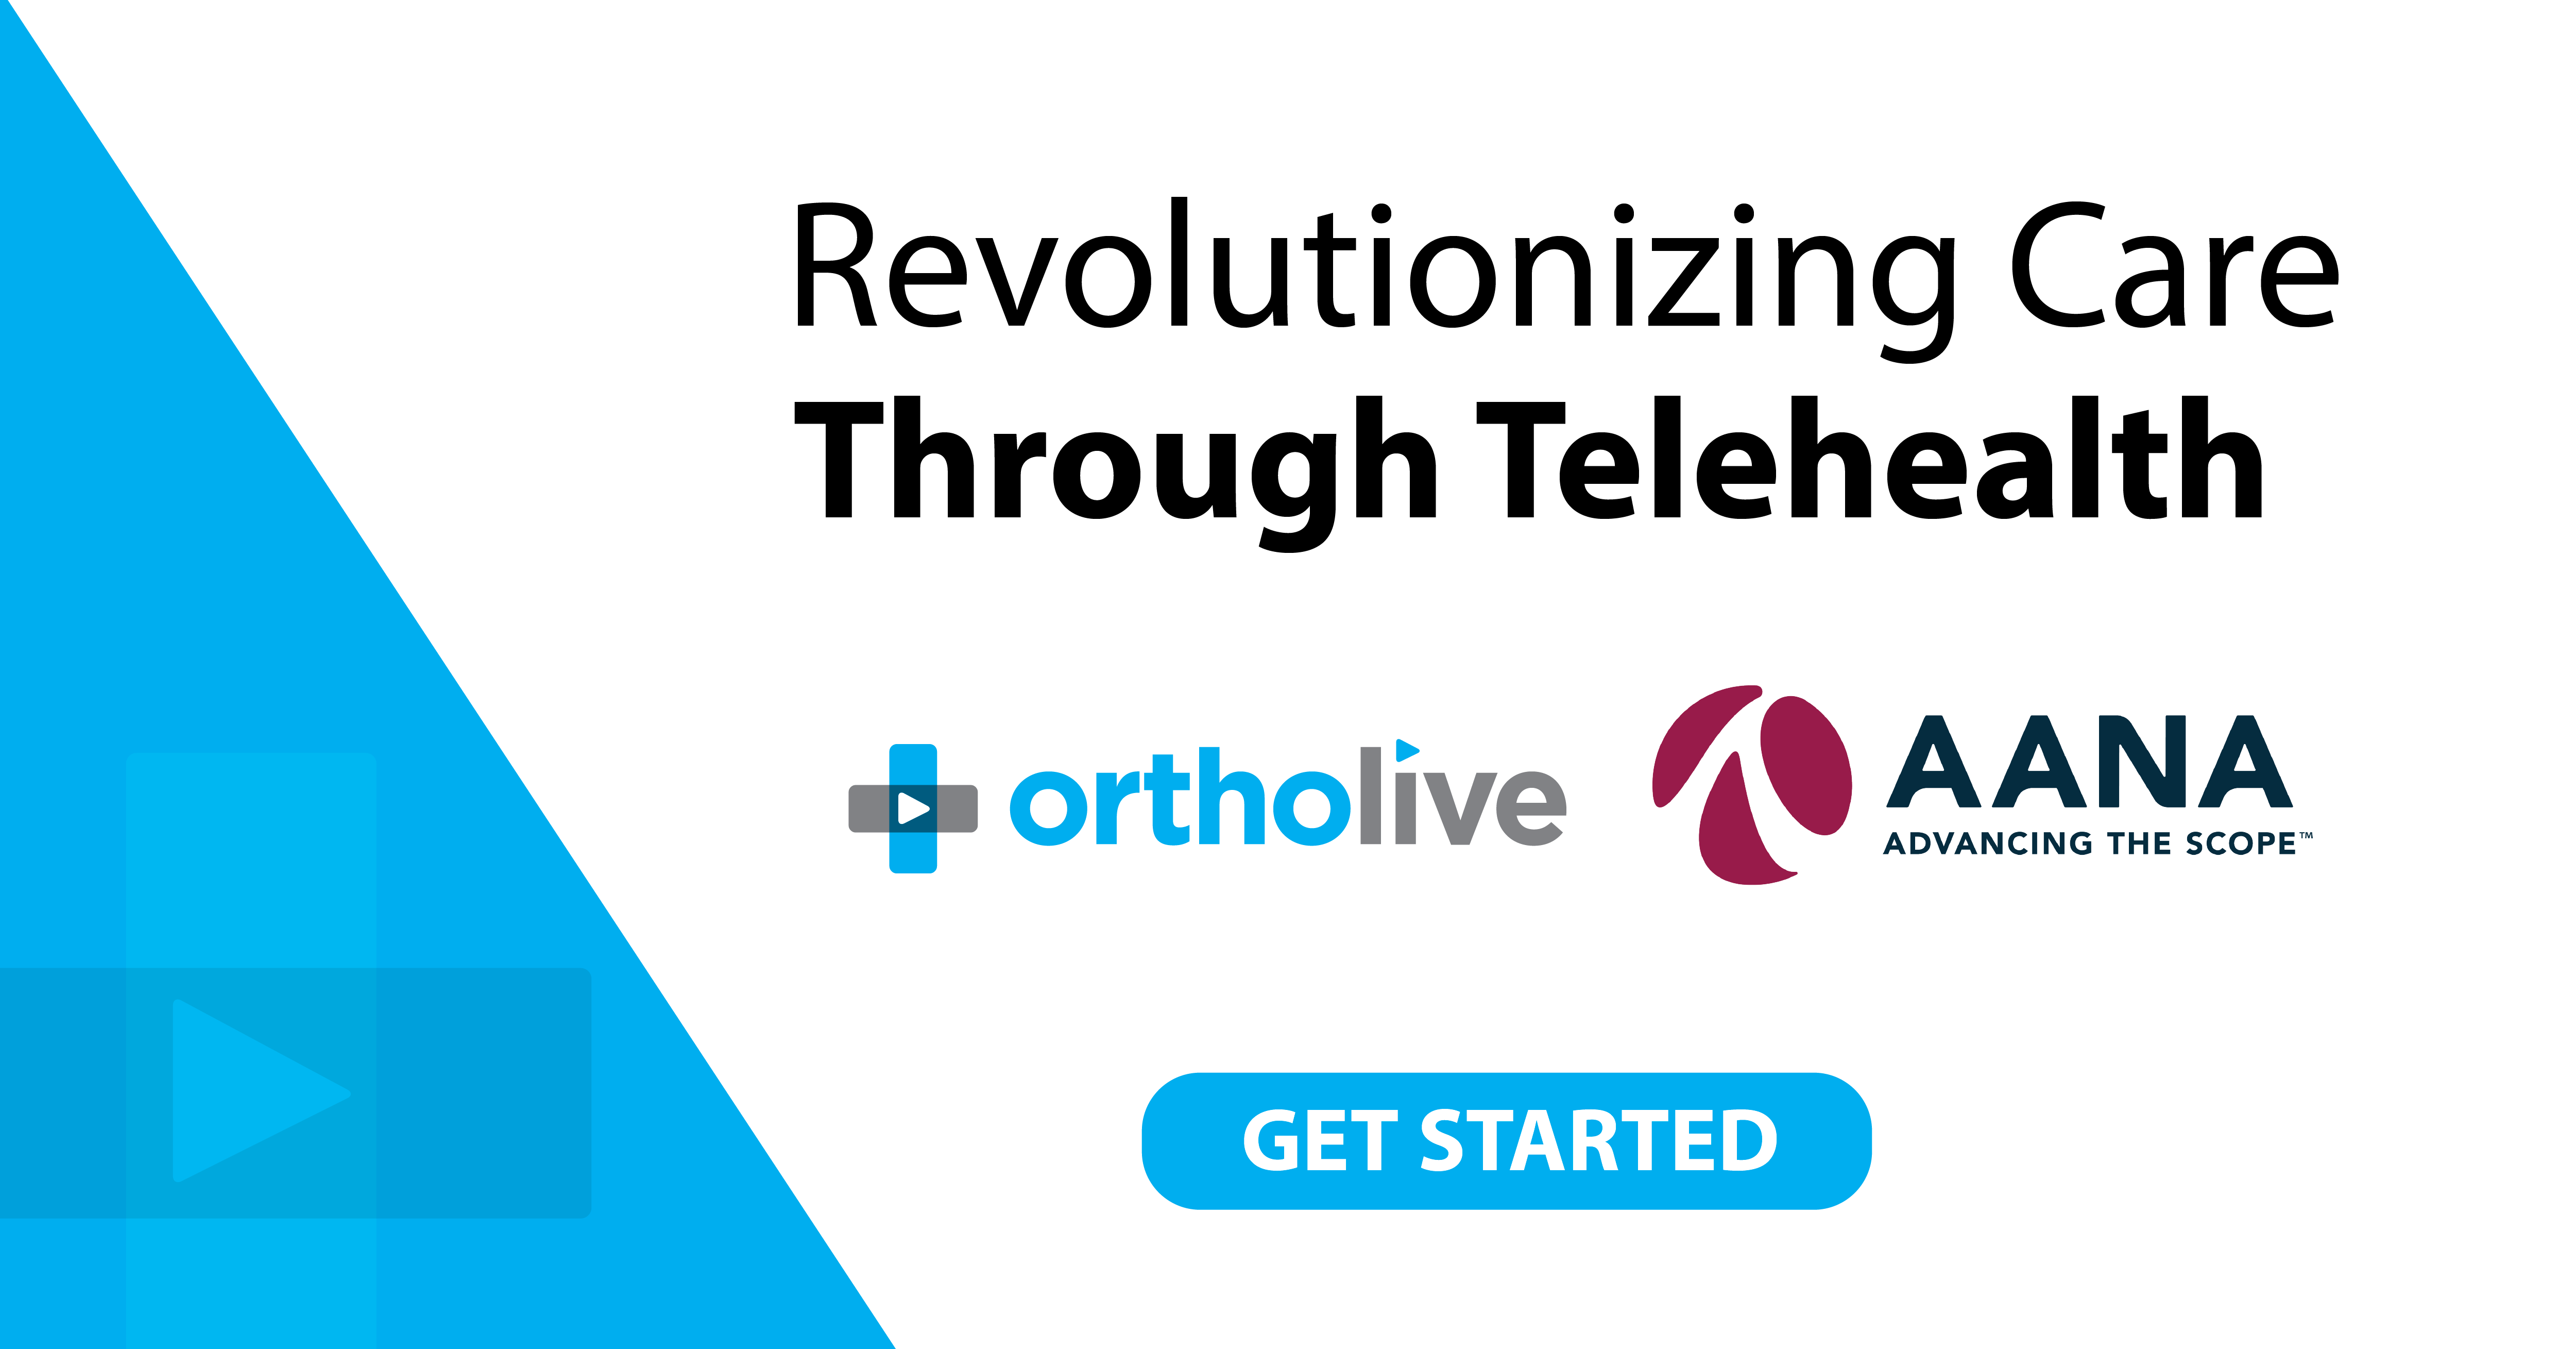 OrthoLive